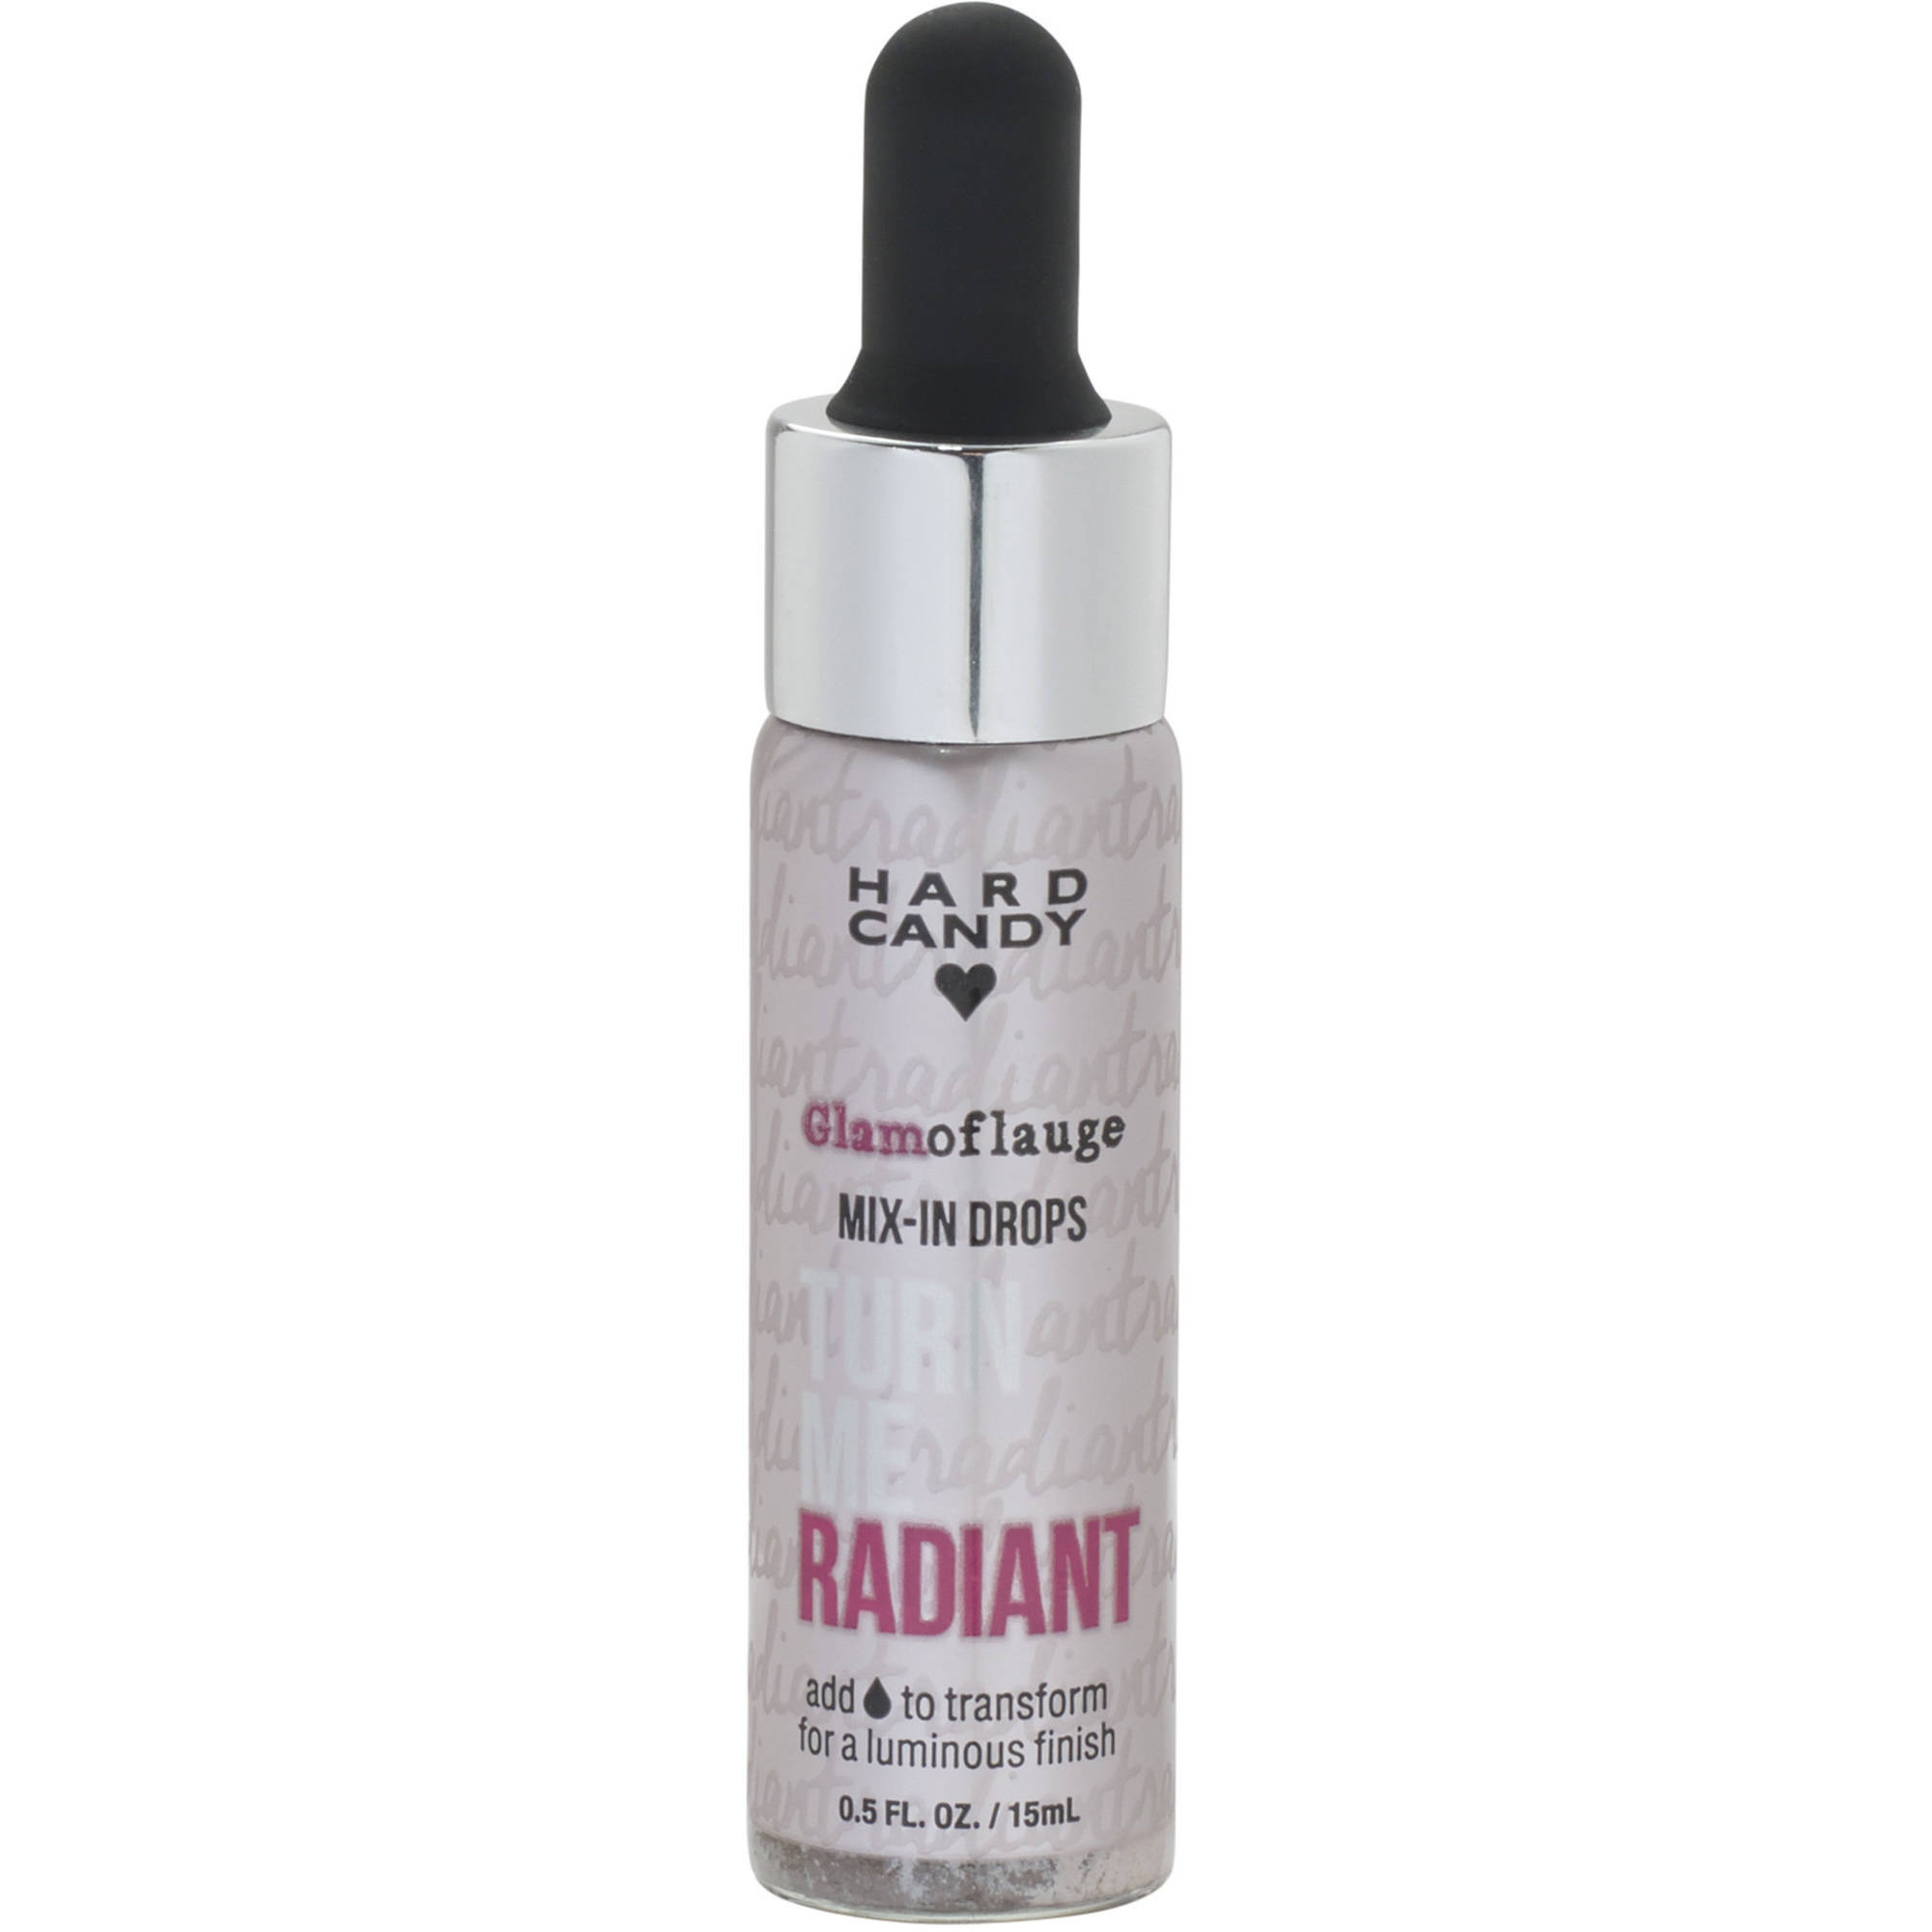 Hard Candy Glamoflauge Mix-In Drops, 1238 Turn Me Radiant, 0.5 fl oz